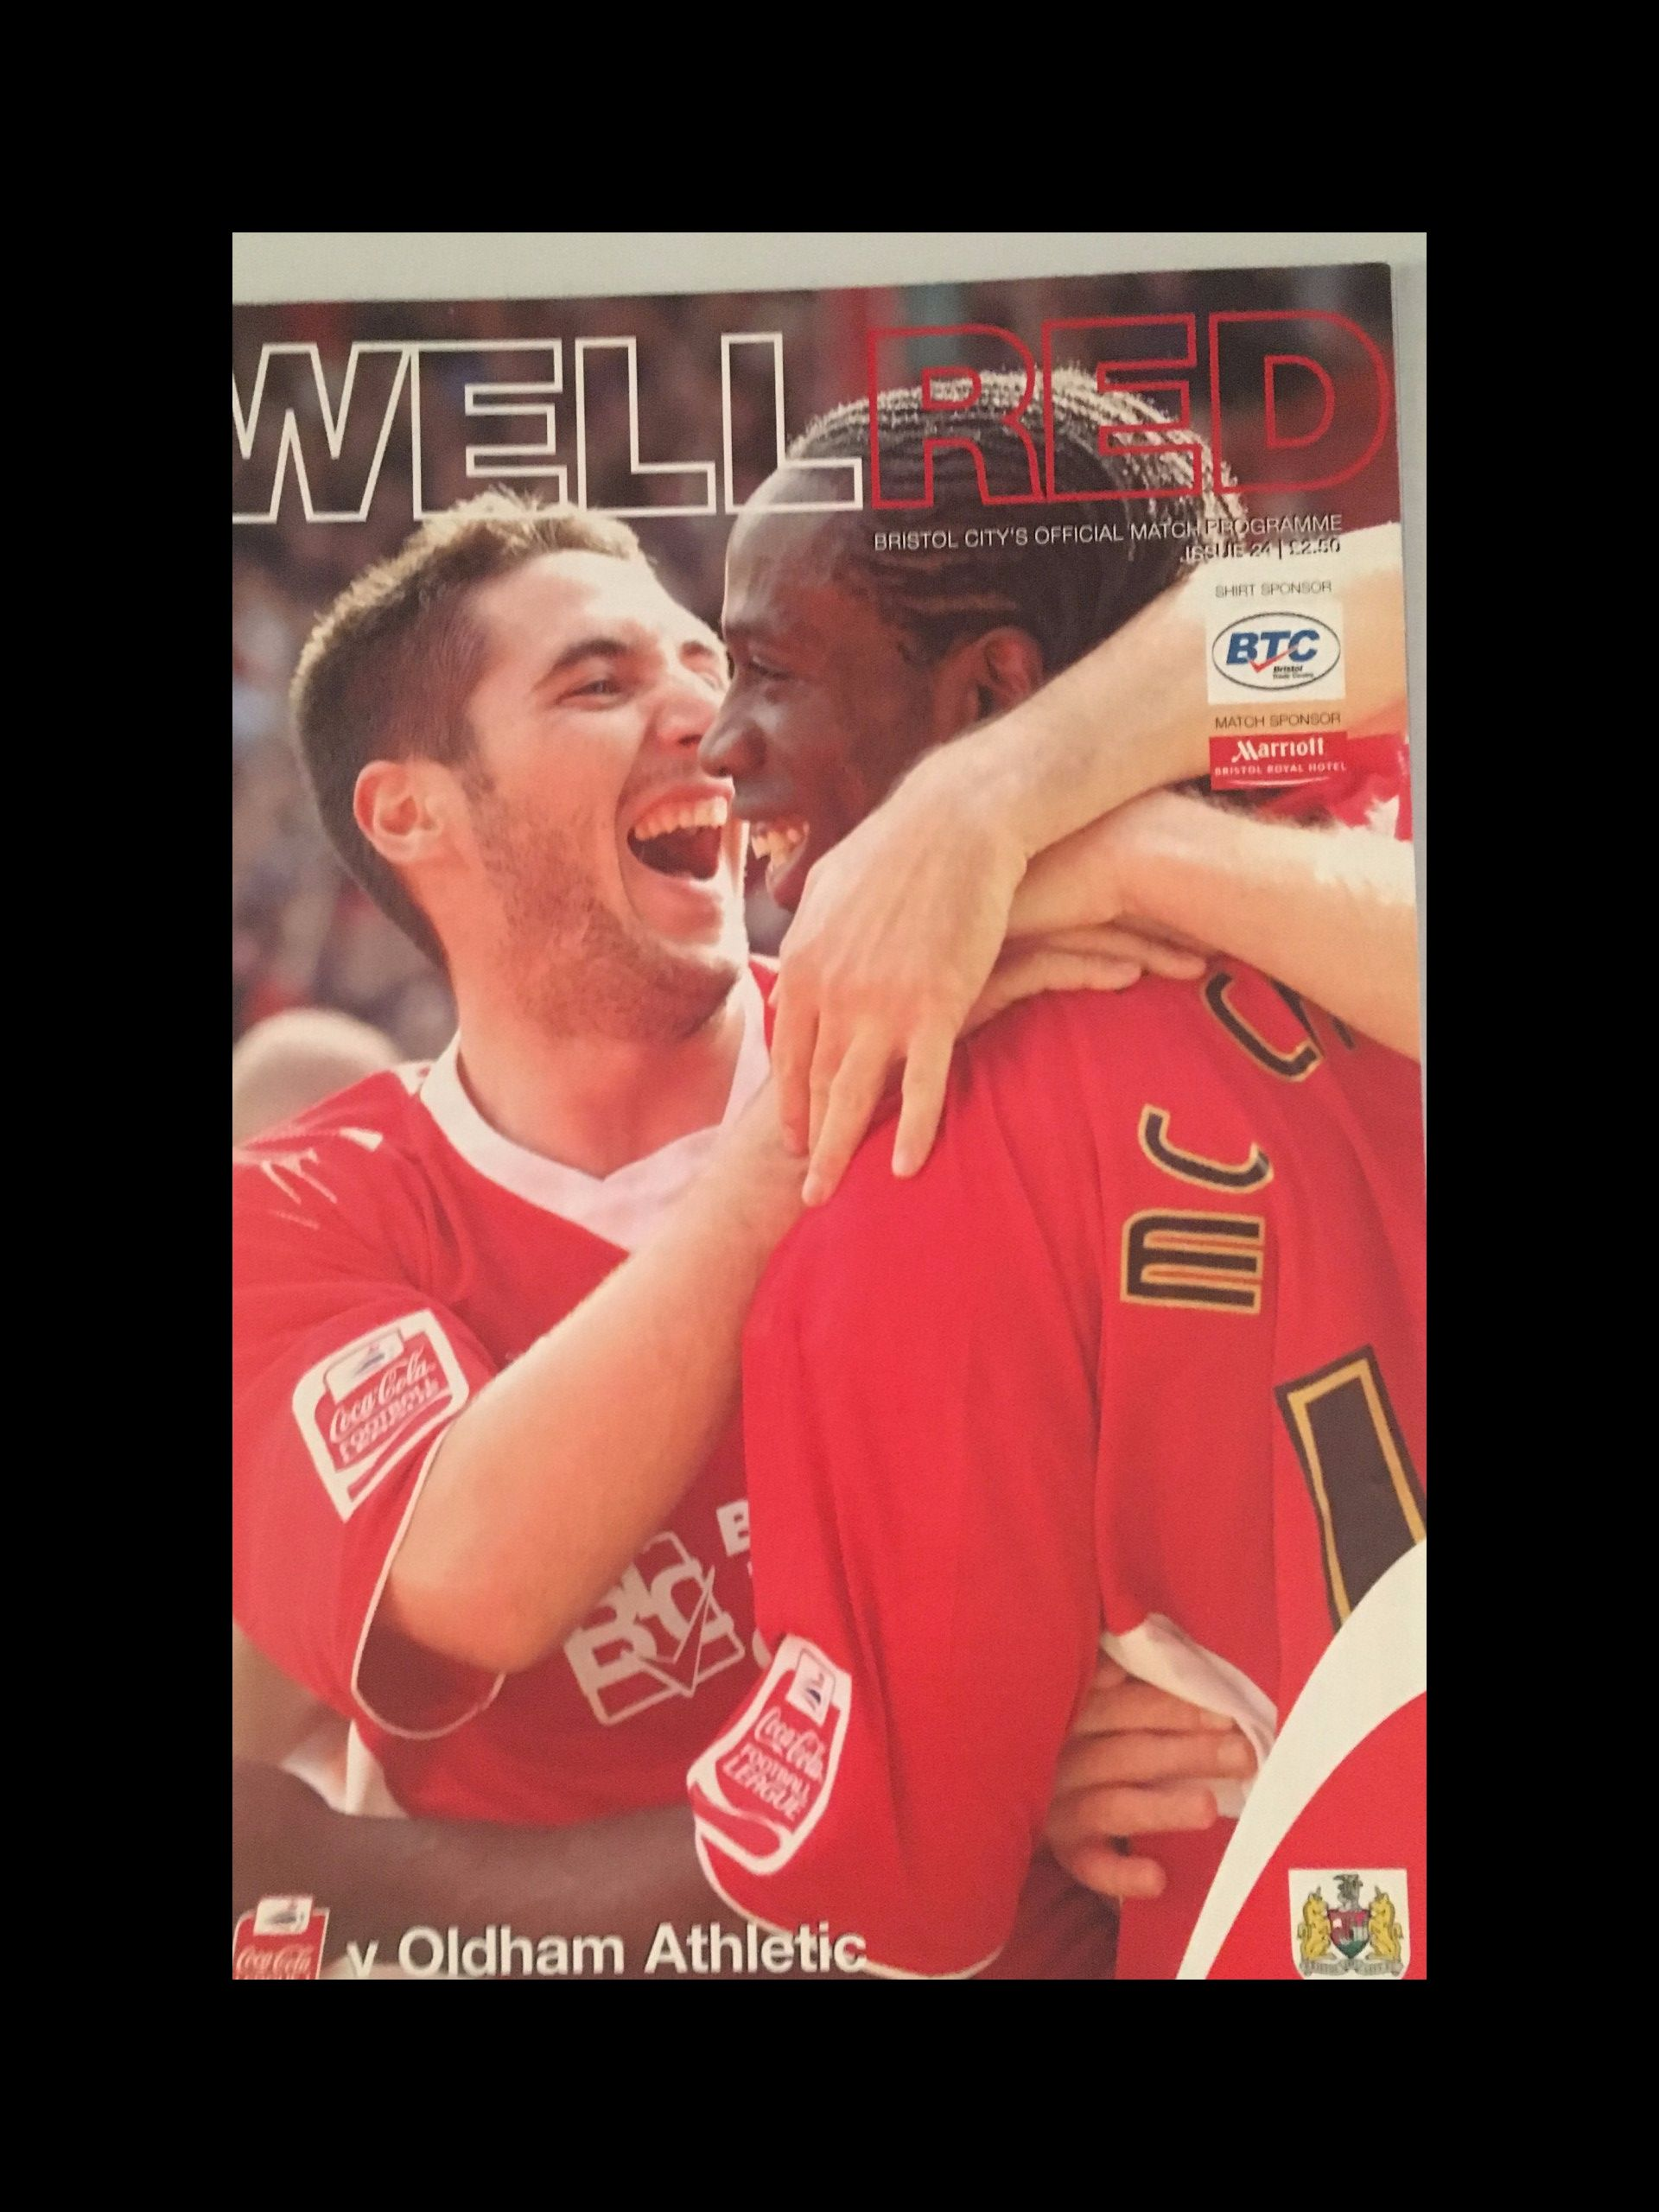 Bristol City v Oldham Athletic 17-04-2006 Programme